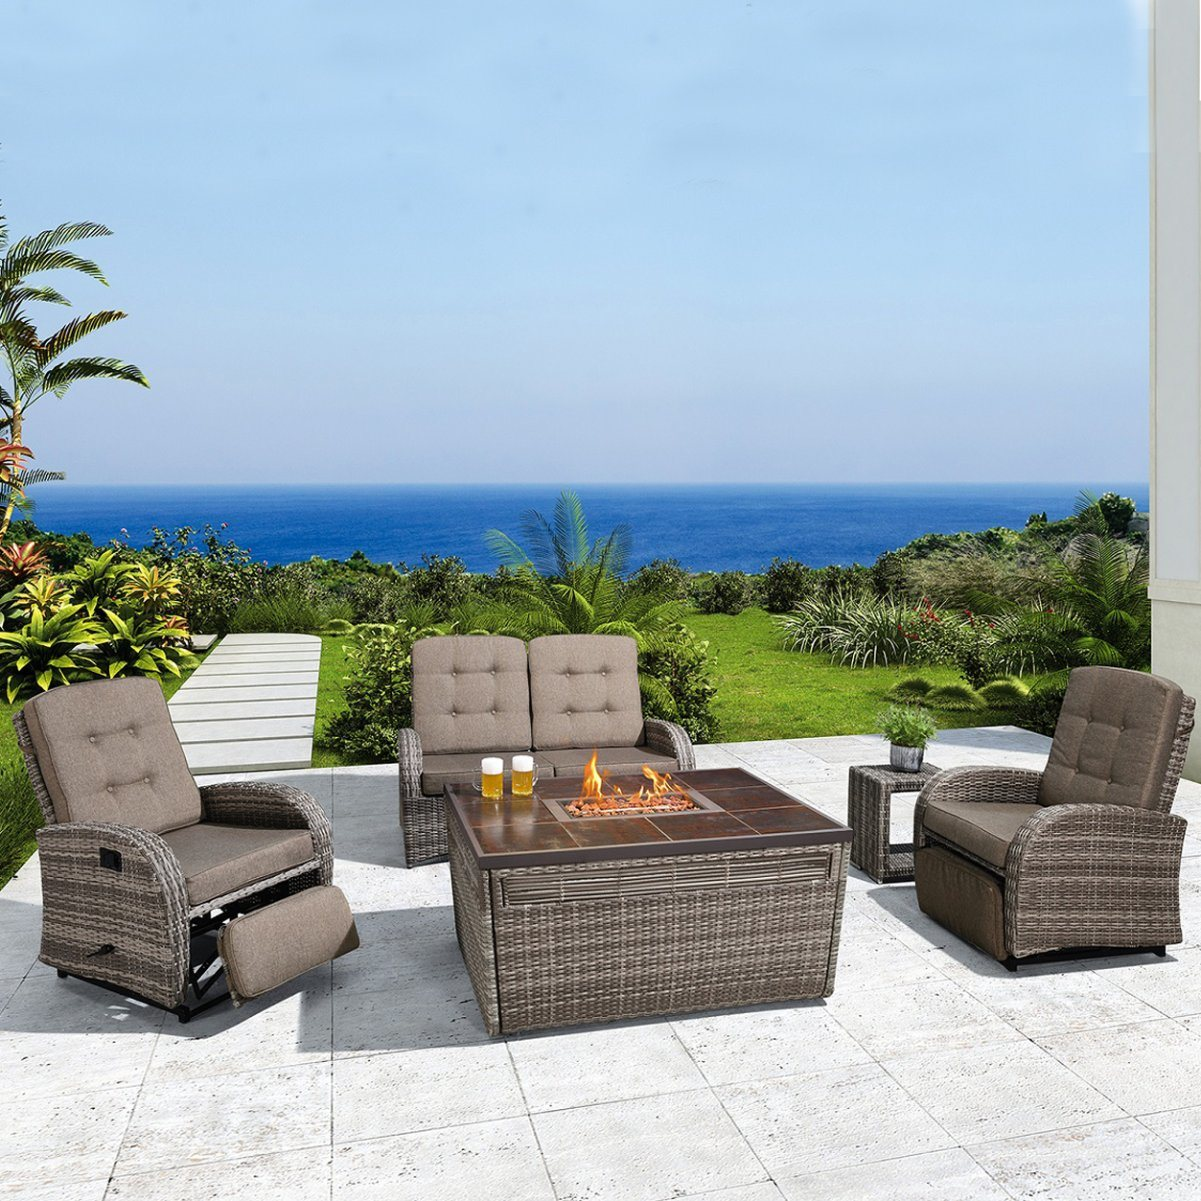 Picture of: China Patio Furniture Garden Sets Outdoor Recliner Sofa With Fire Pit China Outdoor Furniture Set Patio Couch Sets